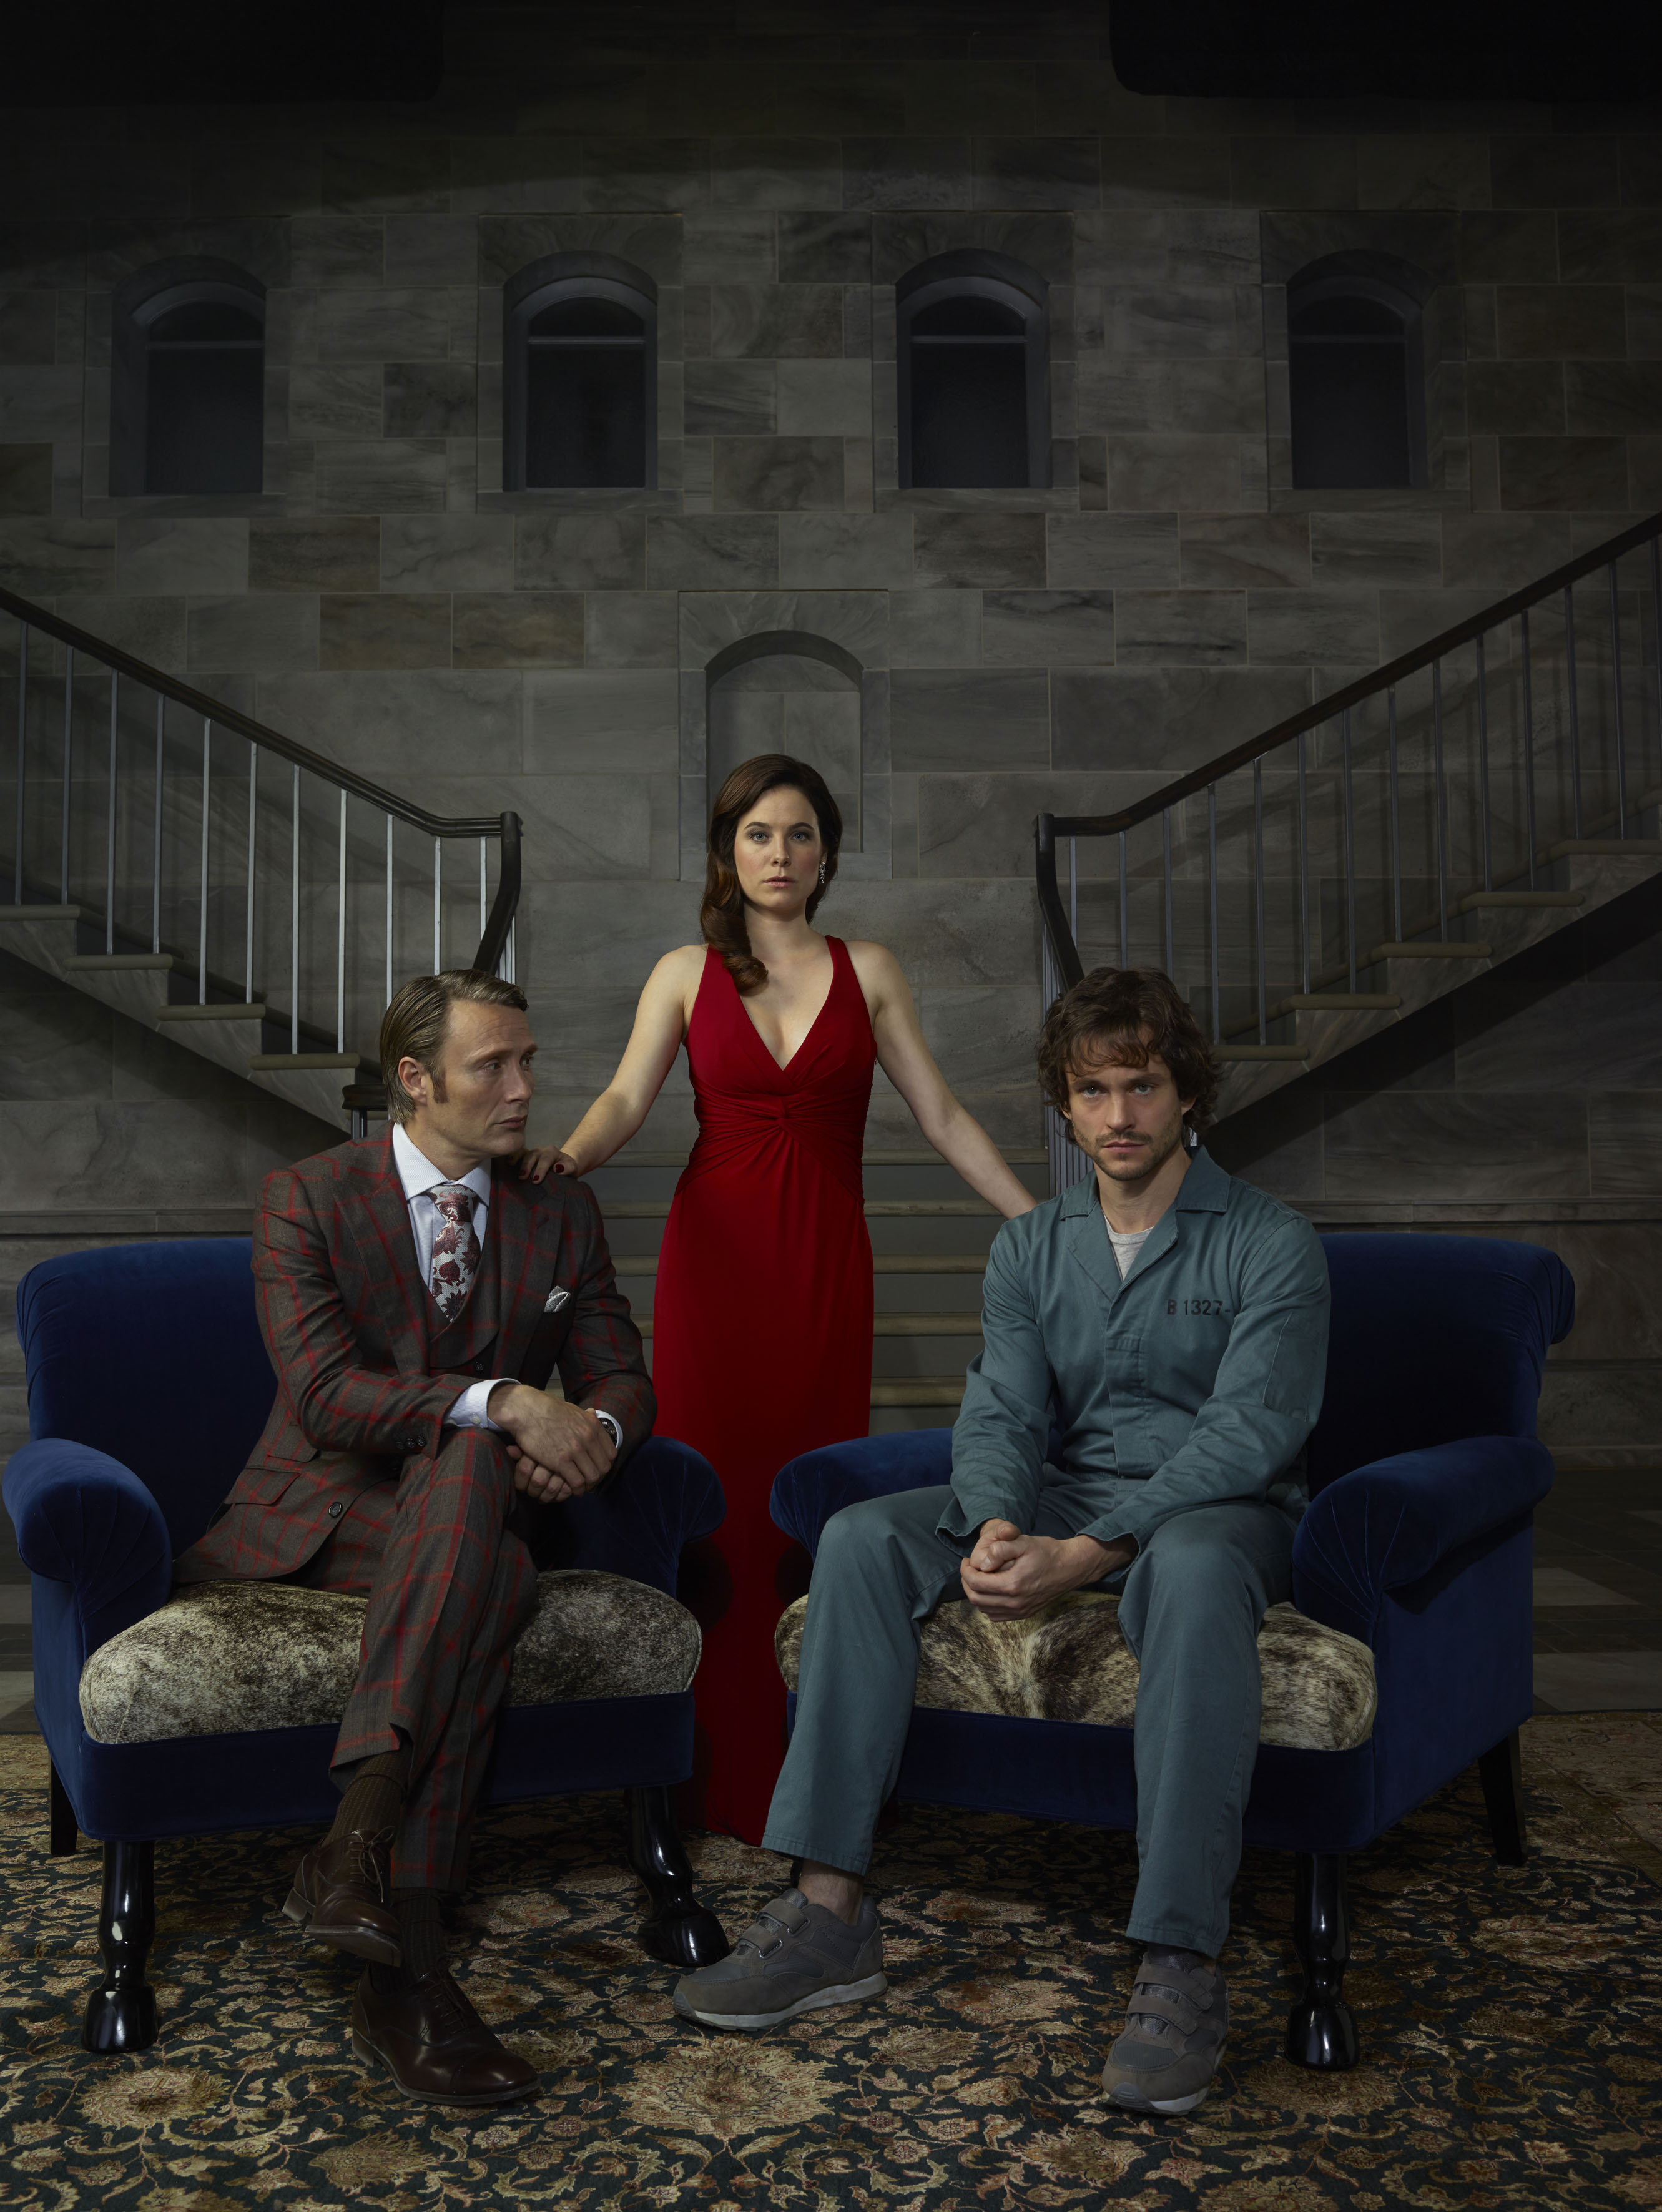 Hannibal lecter alana bloom and will graham hannibal tv series photo 36948609 fanpop - Hannibal tv series actors ...